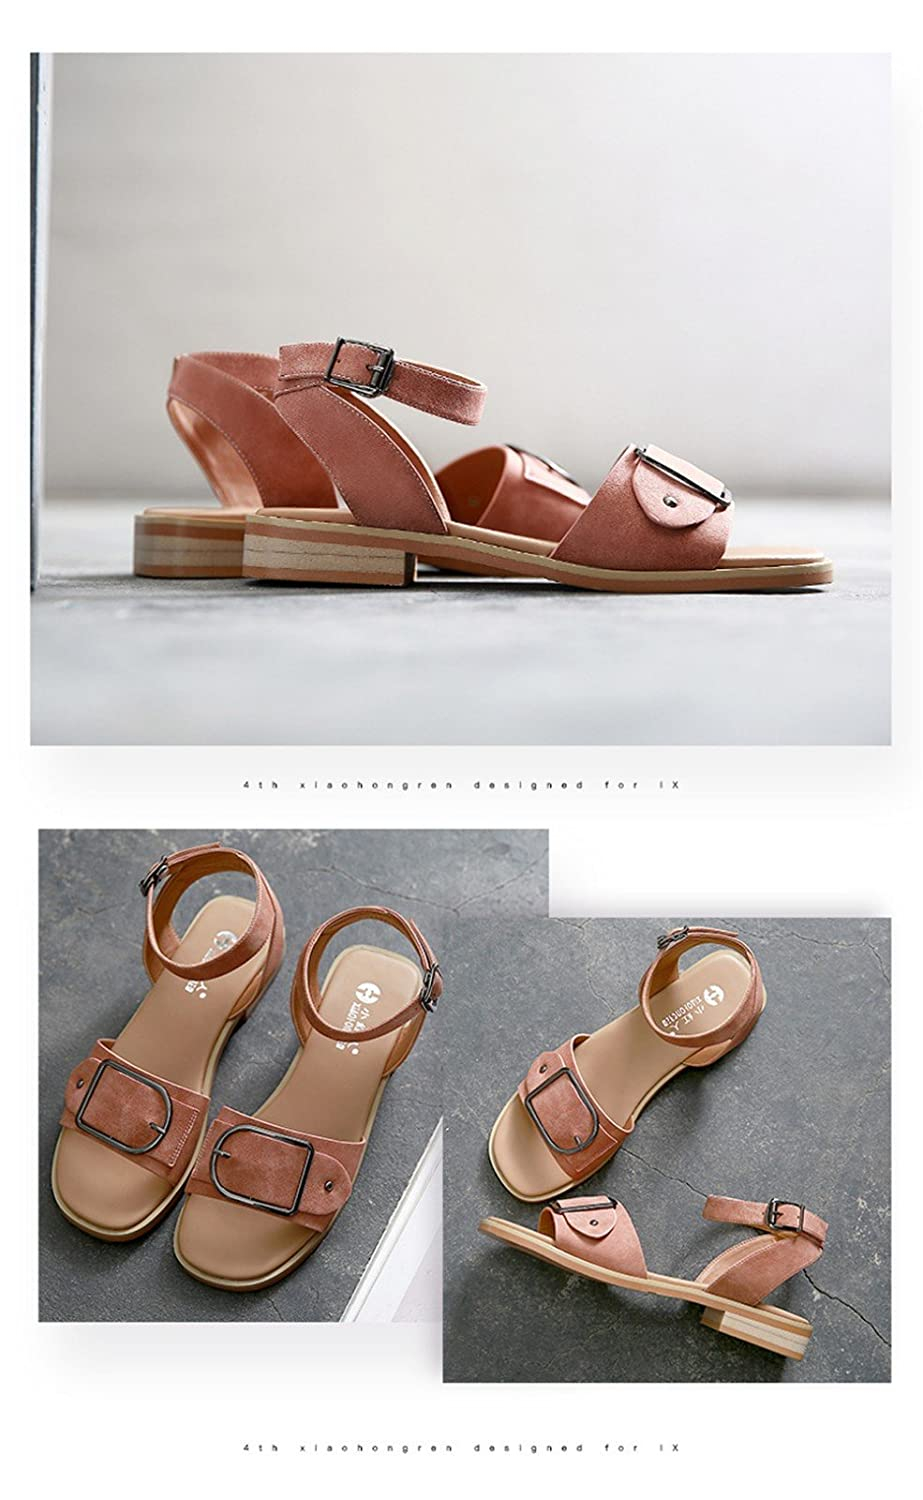 54d11d6b403ea2 MeiMei Women Summer Beach Sandals Low Heel Sandals Women Flat-Bottomed Flat  Thick Slotted Strap Roman Shoes  Amazon.co.uk  Shoes   Bags